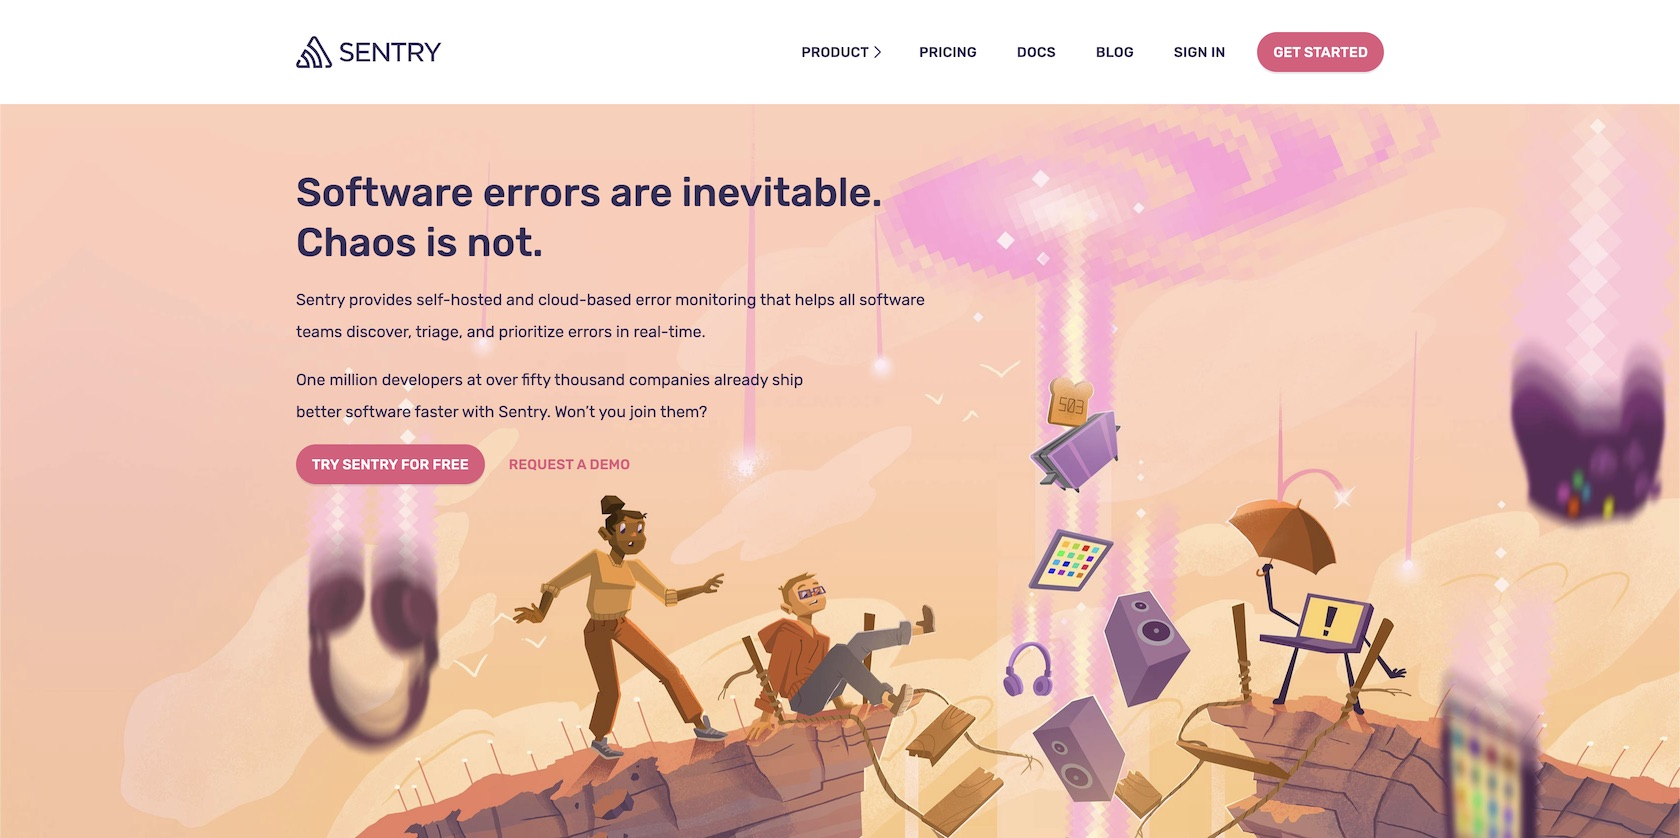 Sentry.io homepage where you can sign up for a self-ruling account.